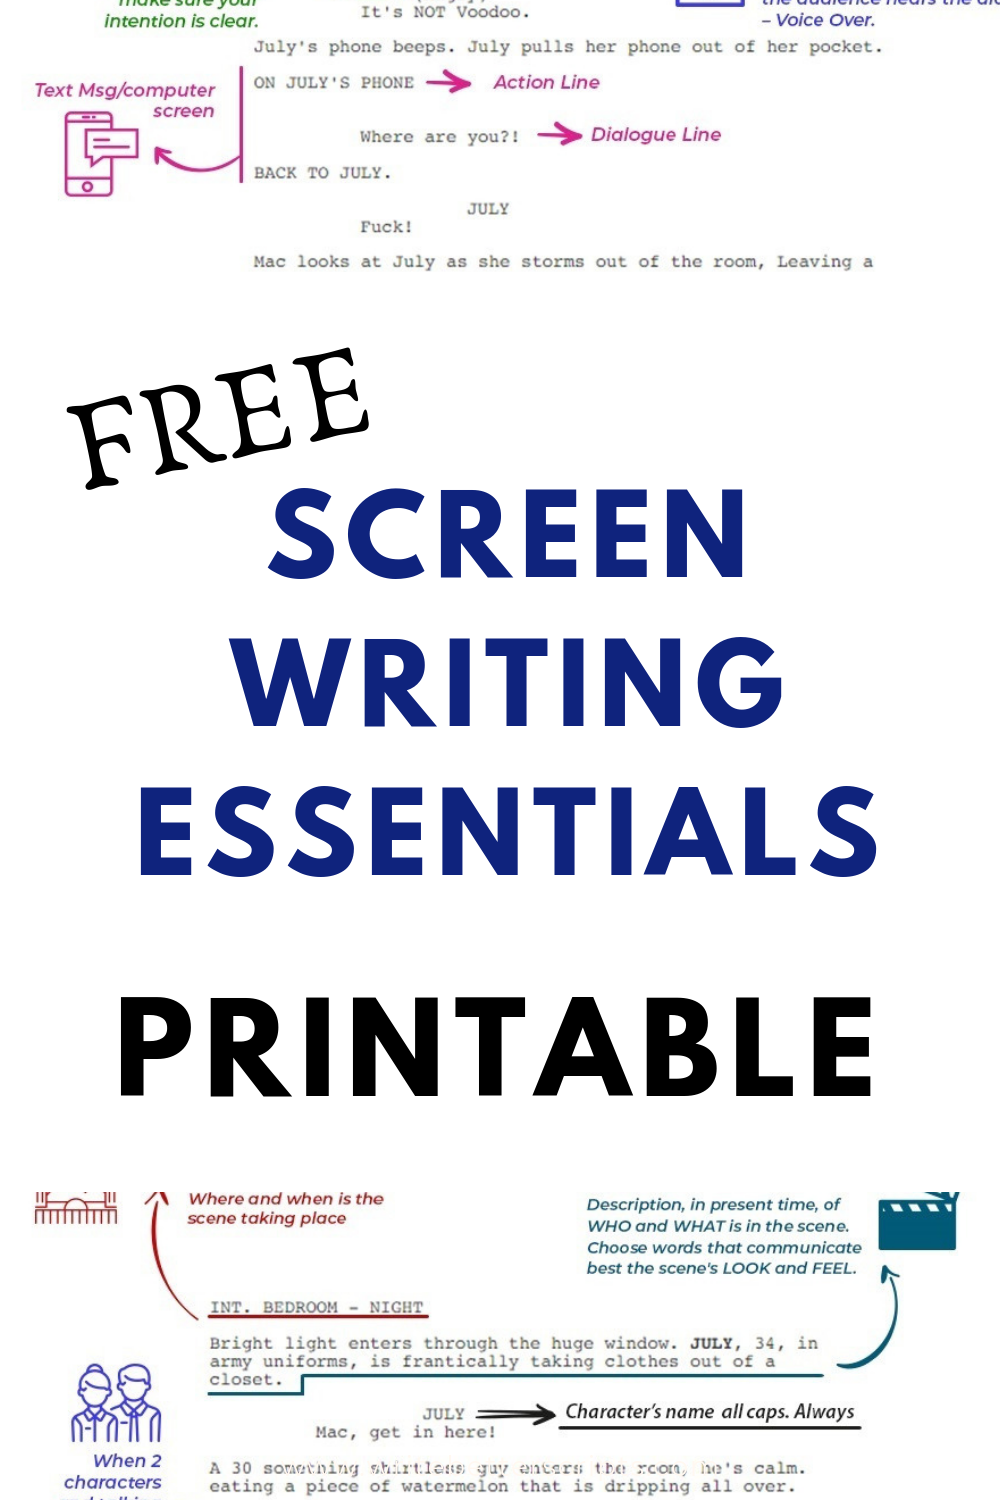 In this printable, you'll find ALL the screenwriting